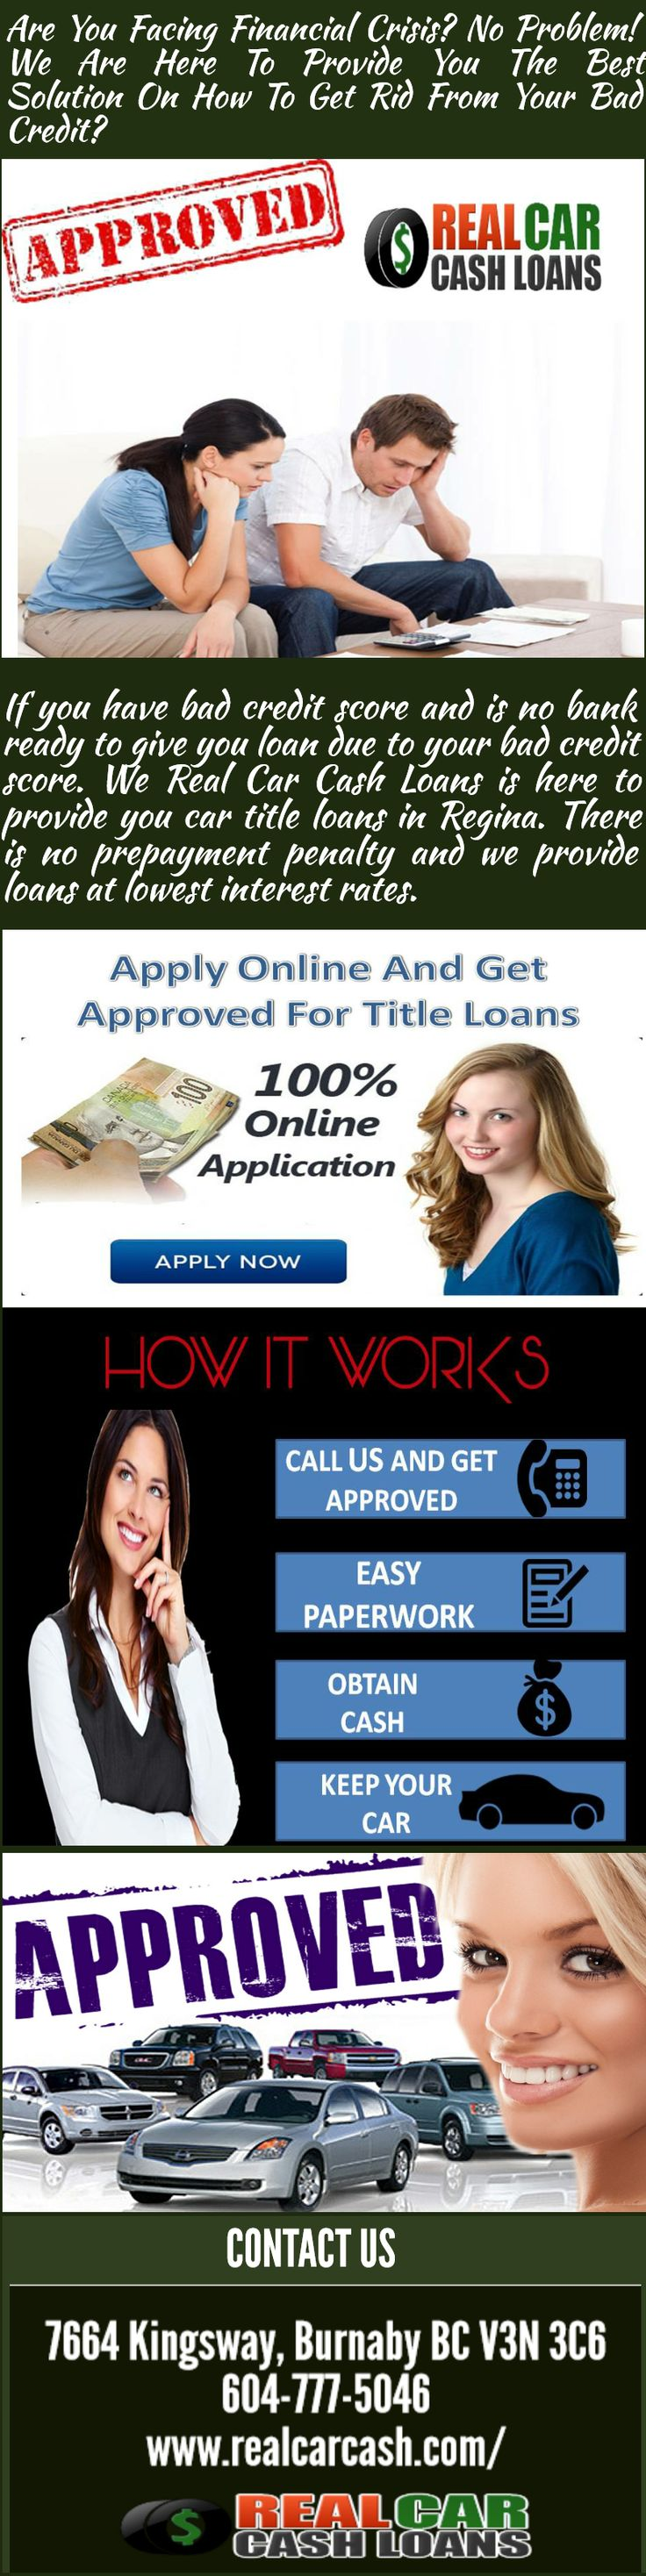 Cash advance loans with installments photo 4